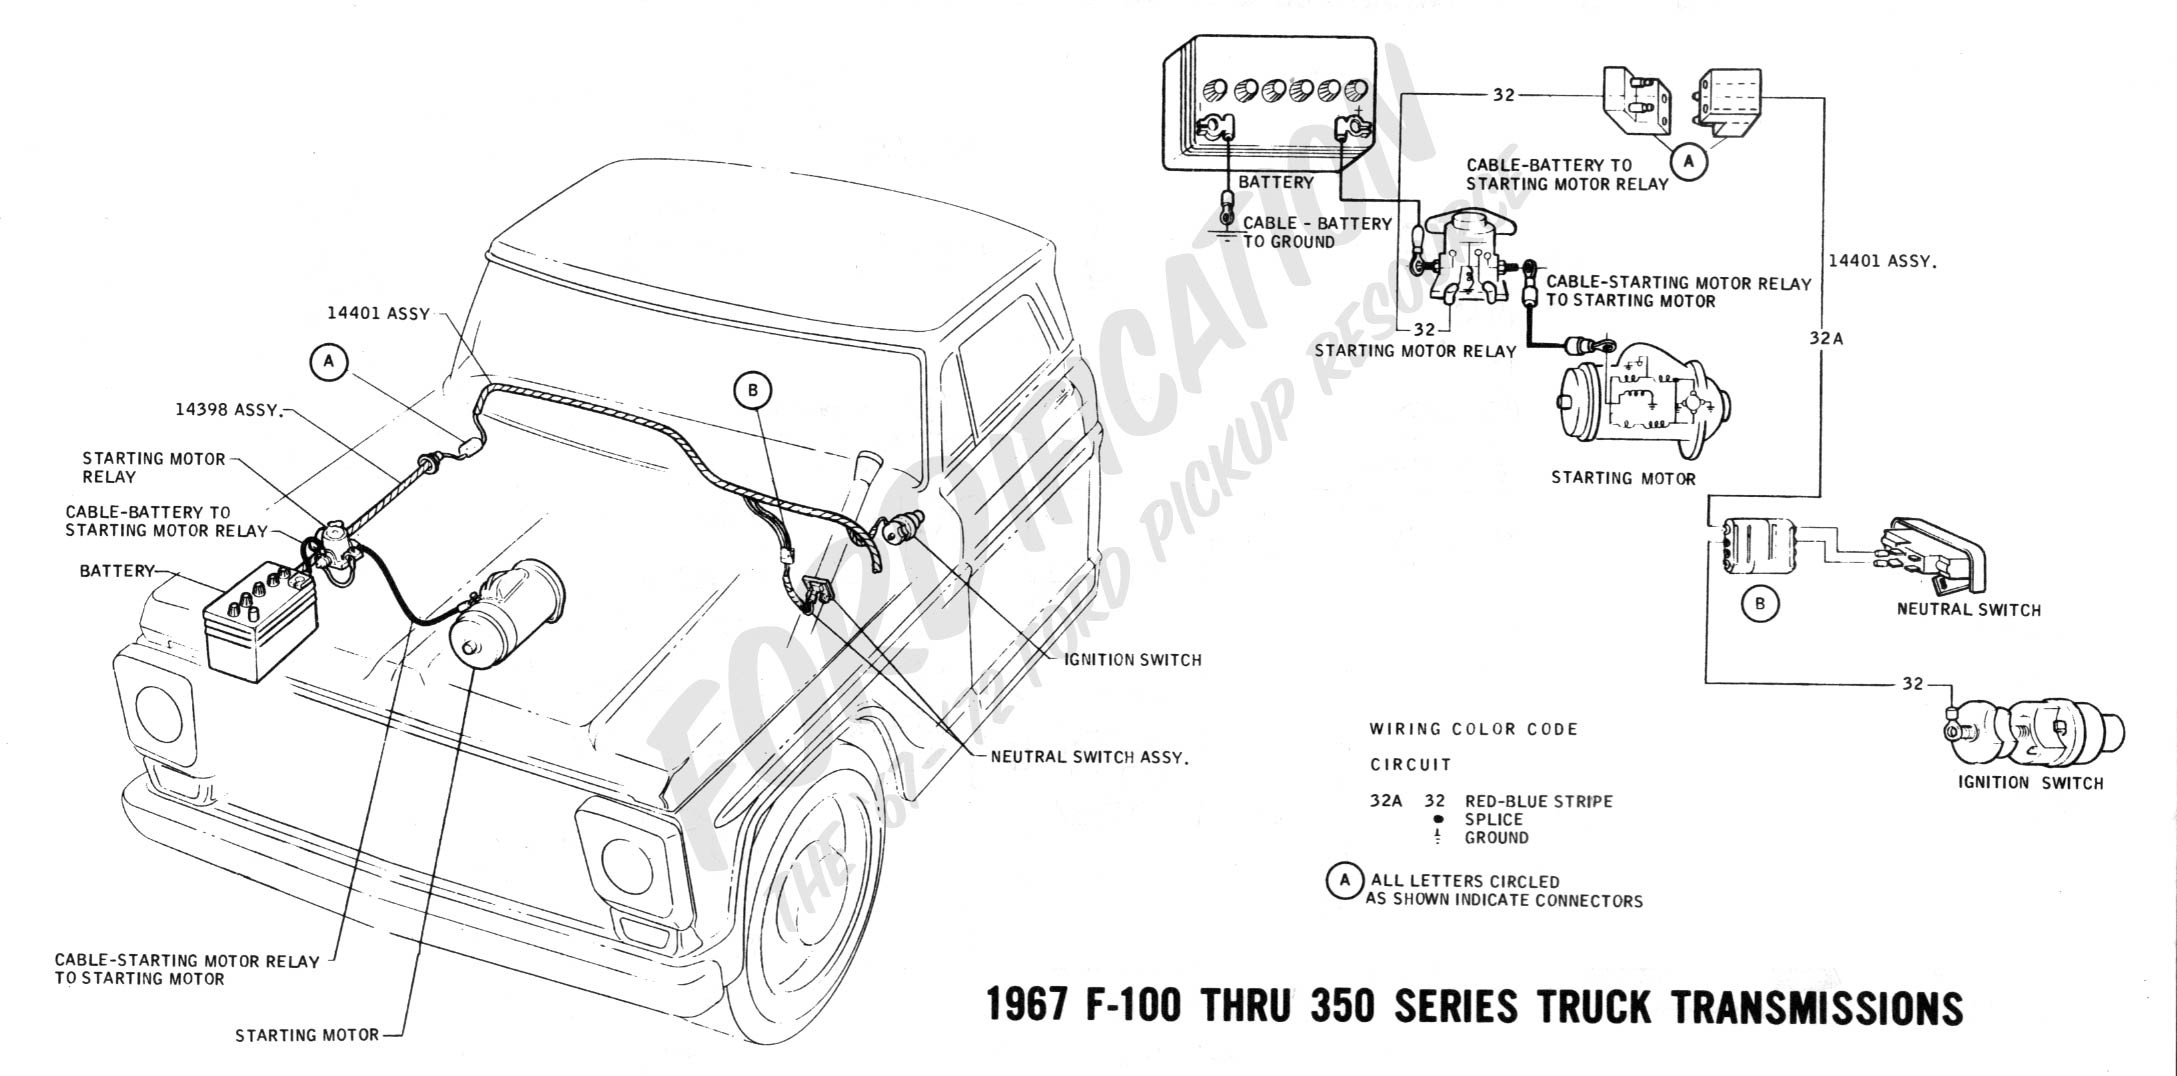 1986 Ford F 150 Engine Diagram Wiring Library 460 Vacuum F150 Truck Technical Drawings And Schematics Section H Of